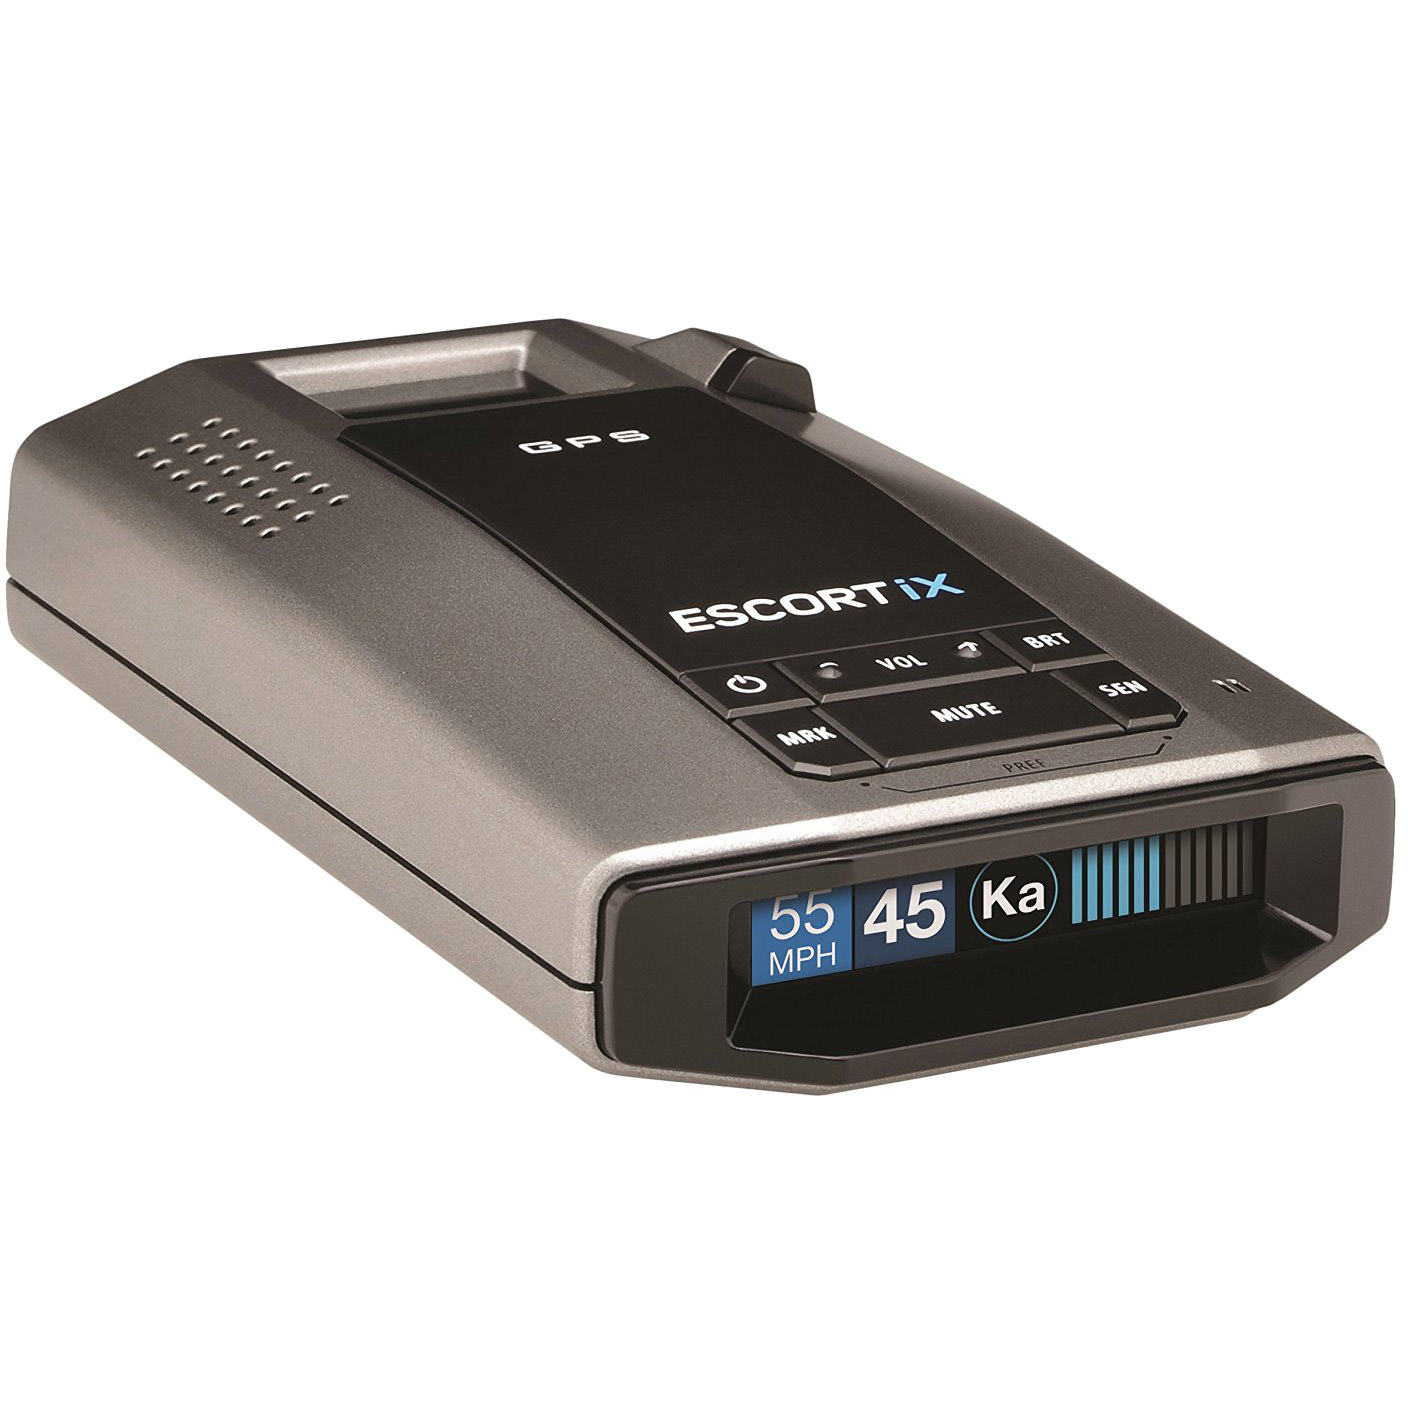 Buy Escort iX Radar Detector 0100028-1 by Escort